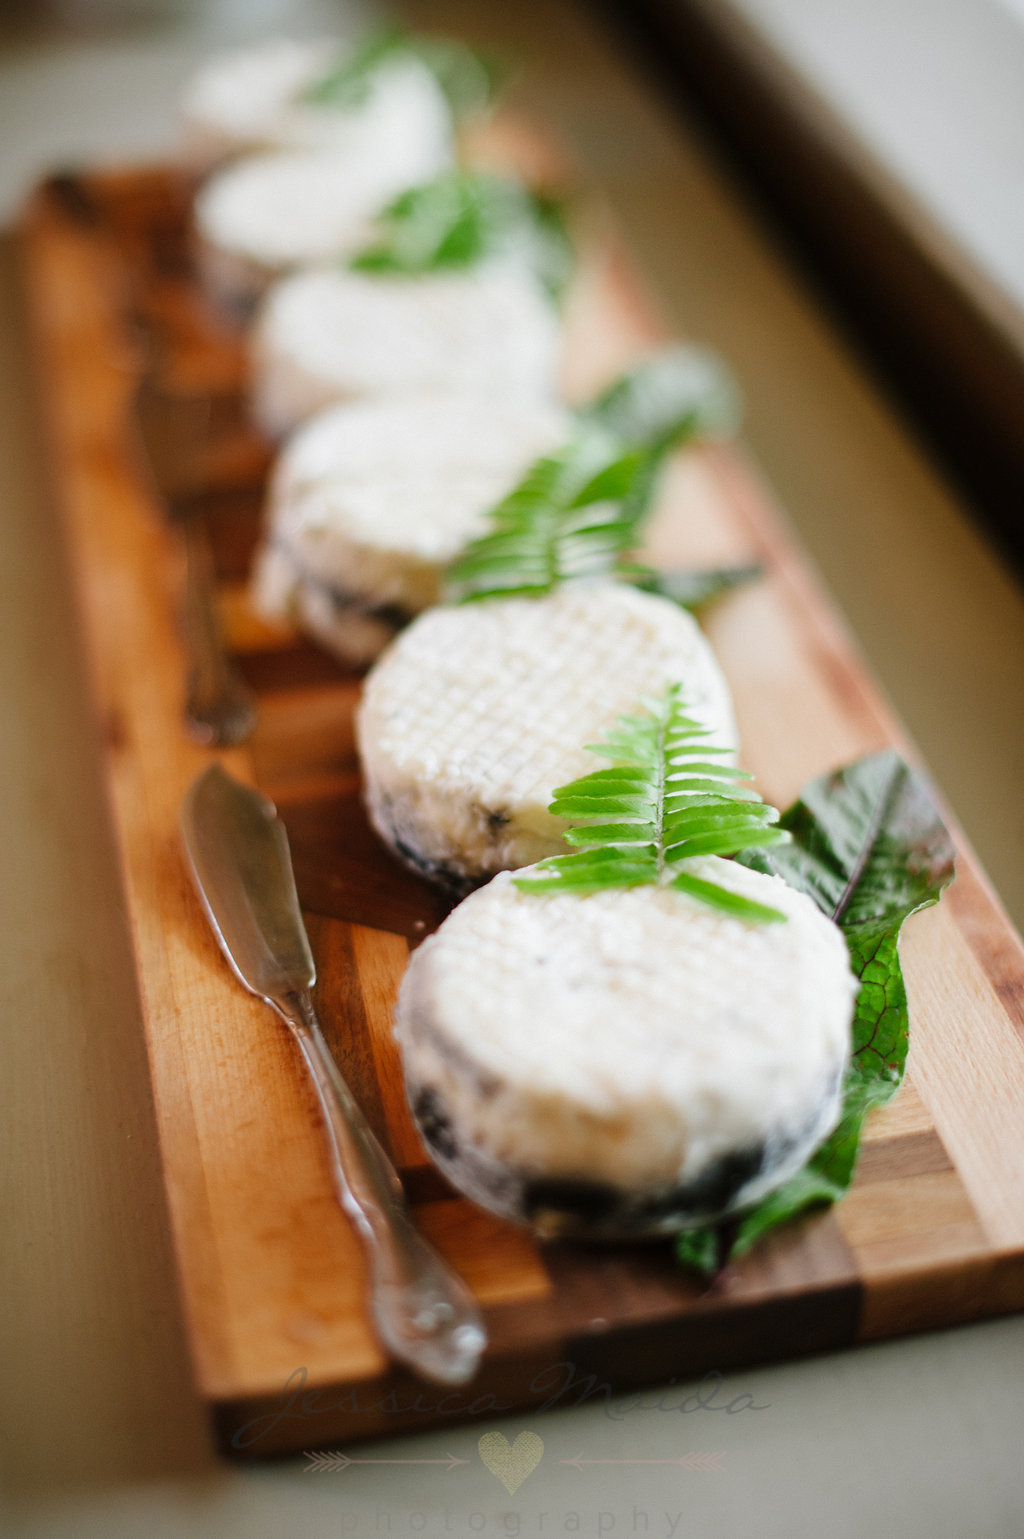 Vegetable Ash Goat Cheese from Caromont Farm